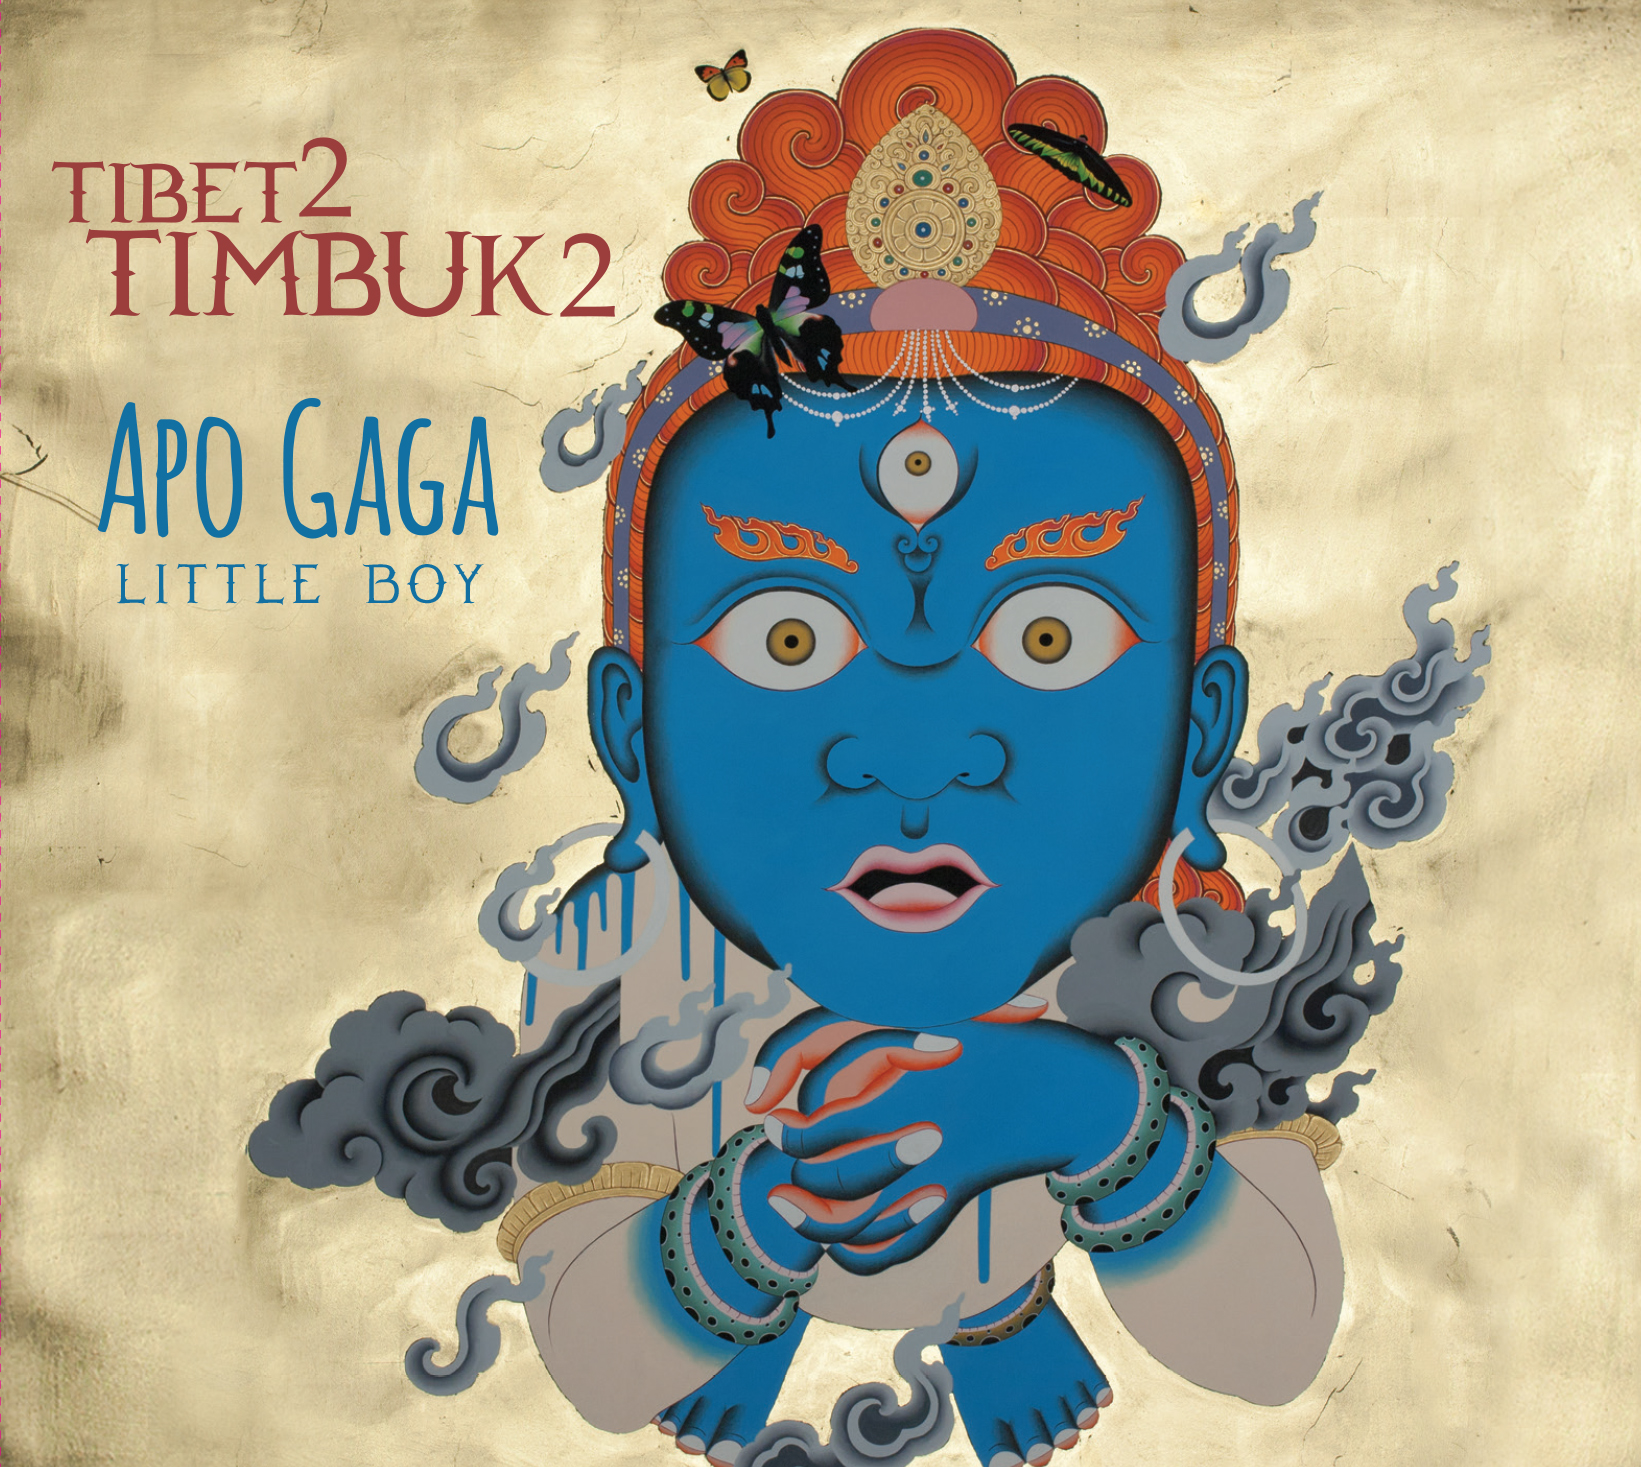 Tibet2Timbuk2's second CD, Apo Gaga - Little Boy